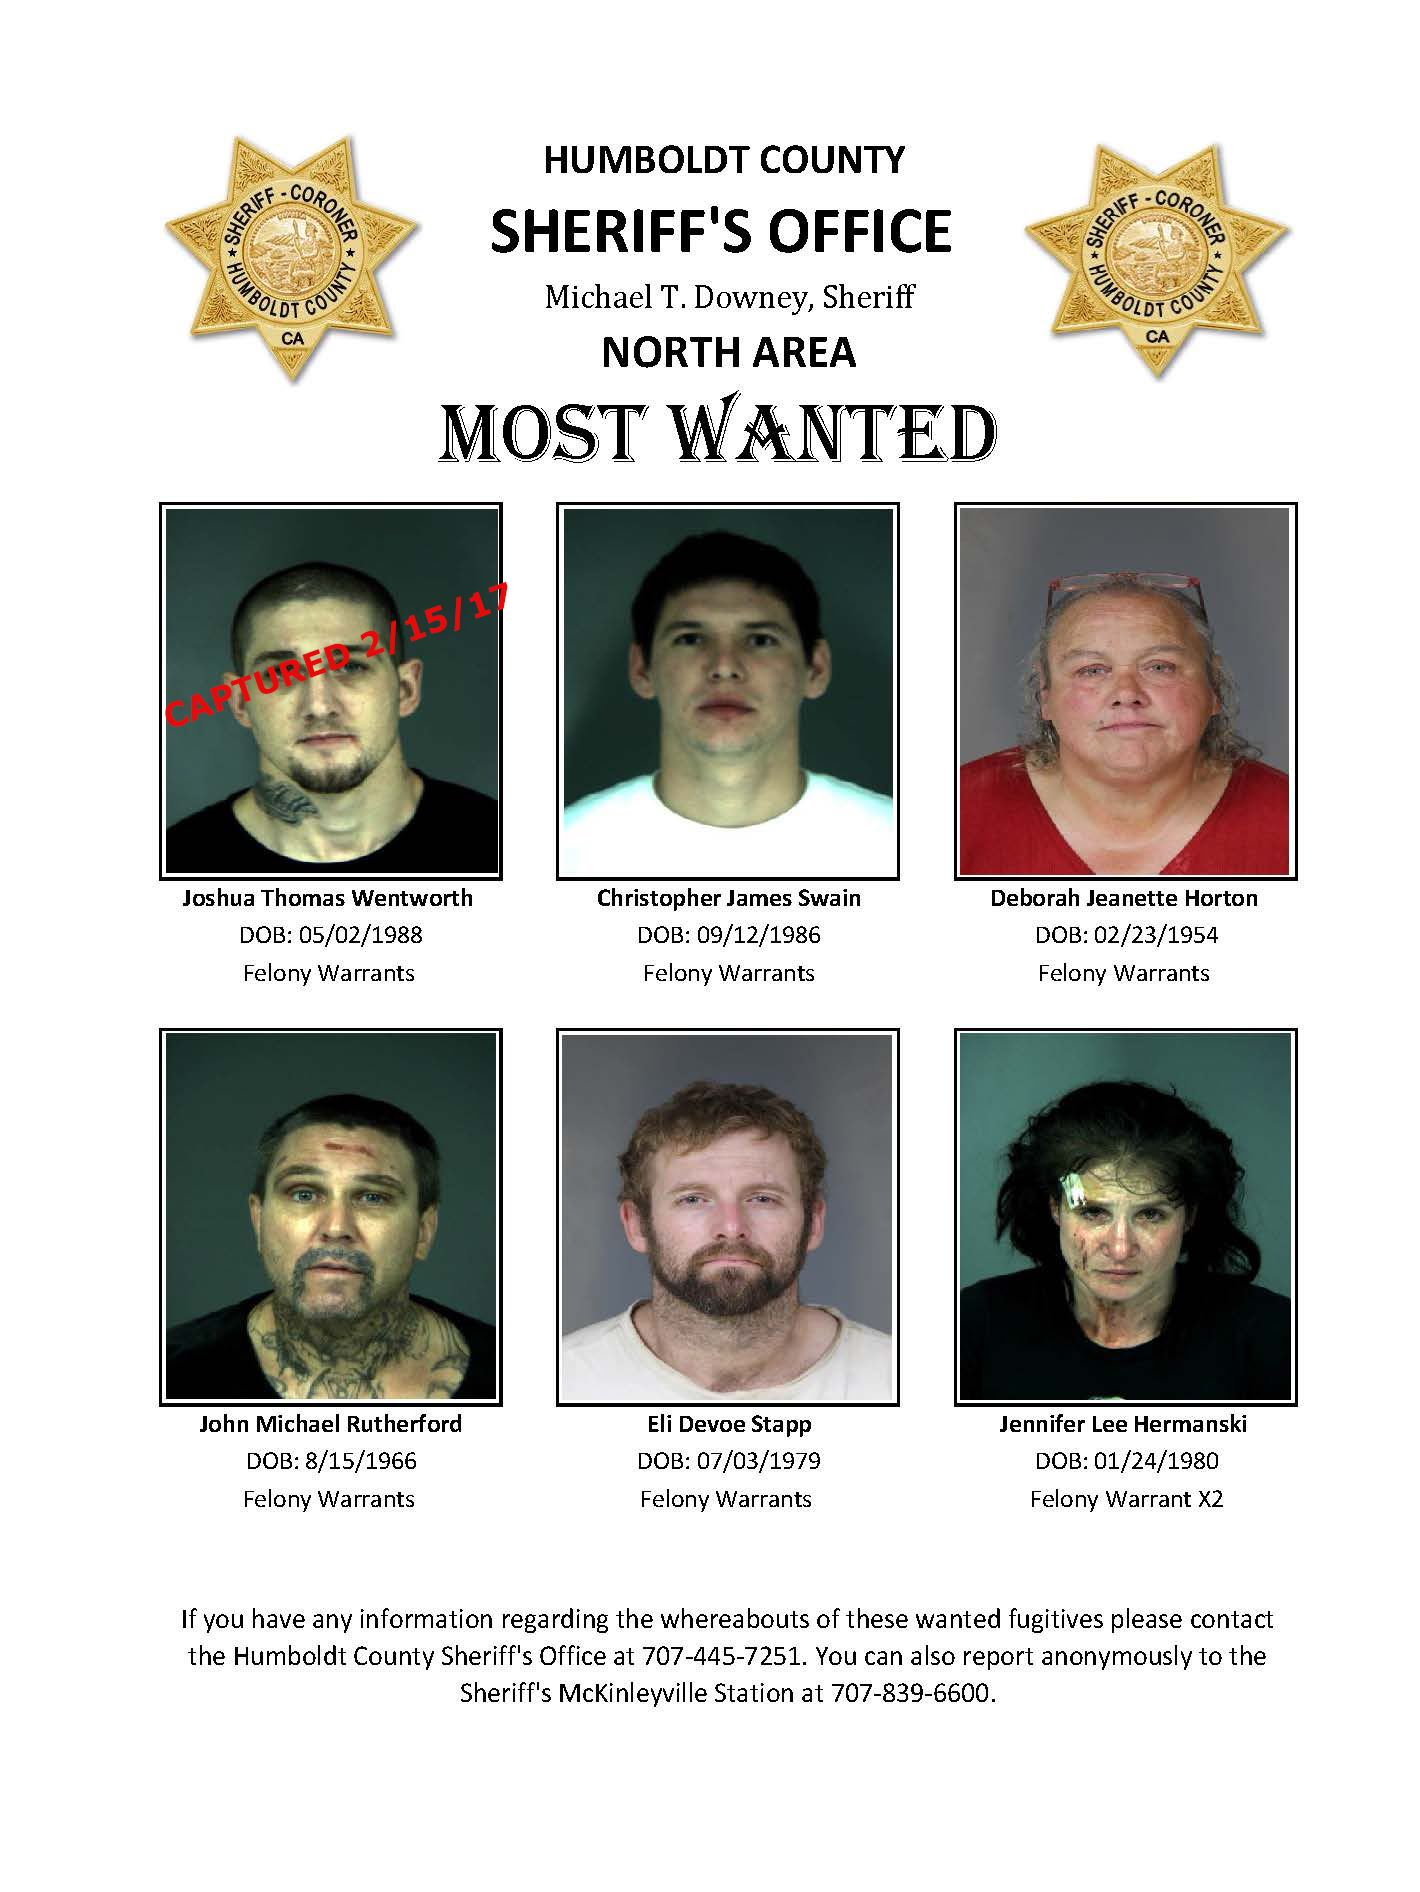 North Area Humboldt Most Wanted